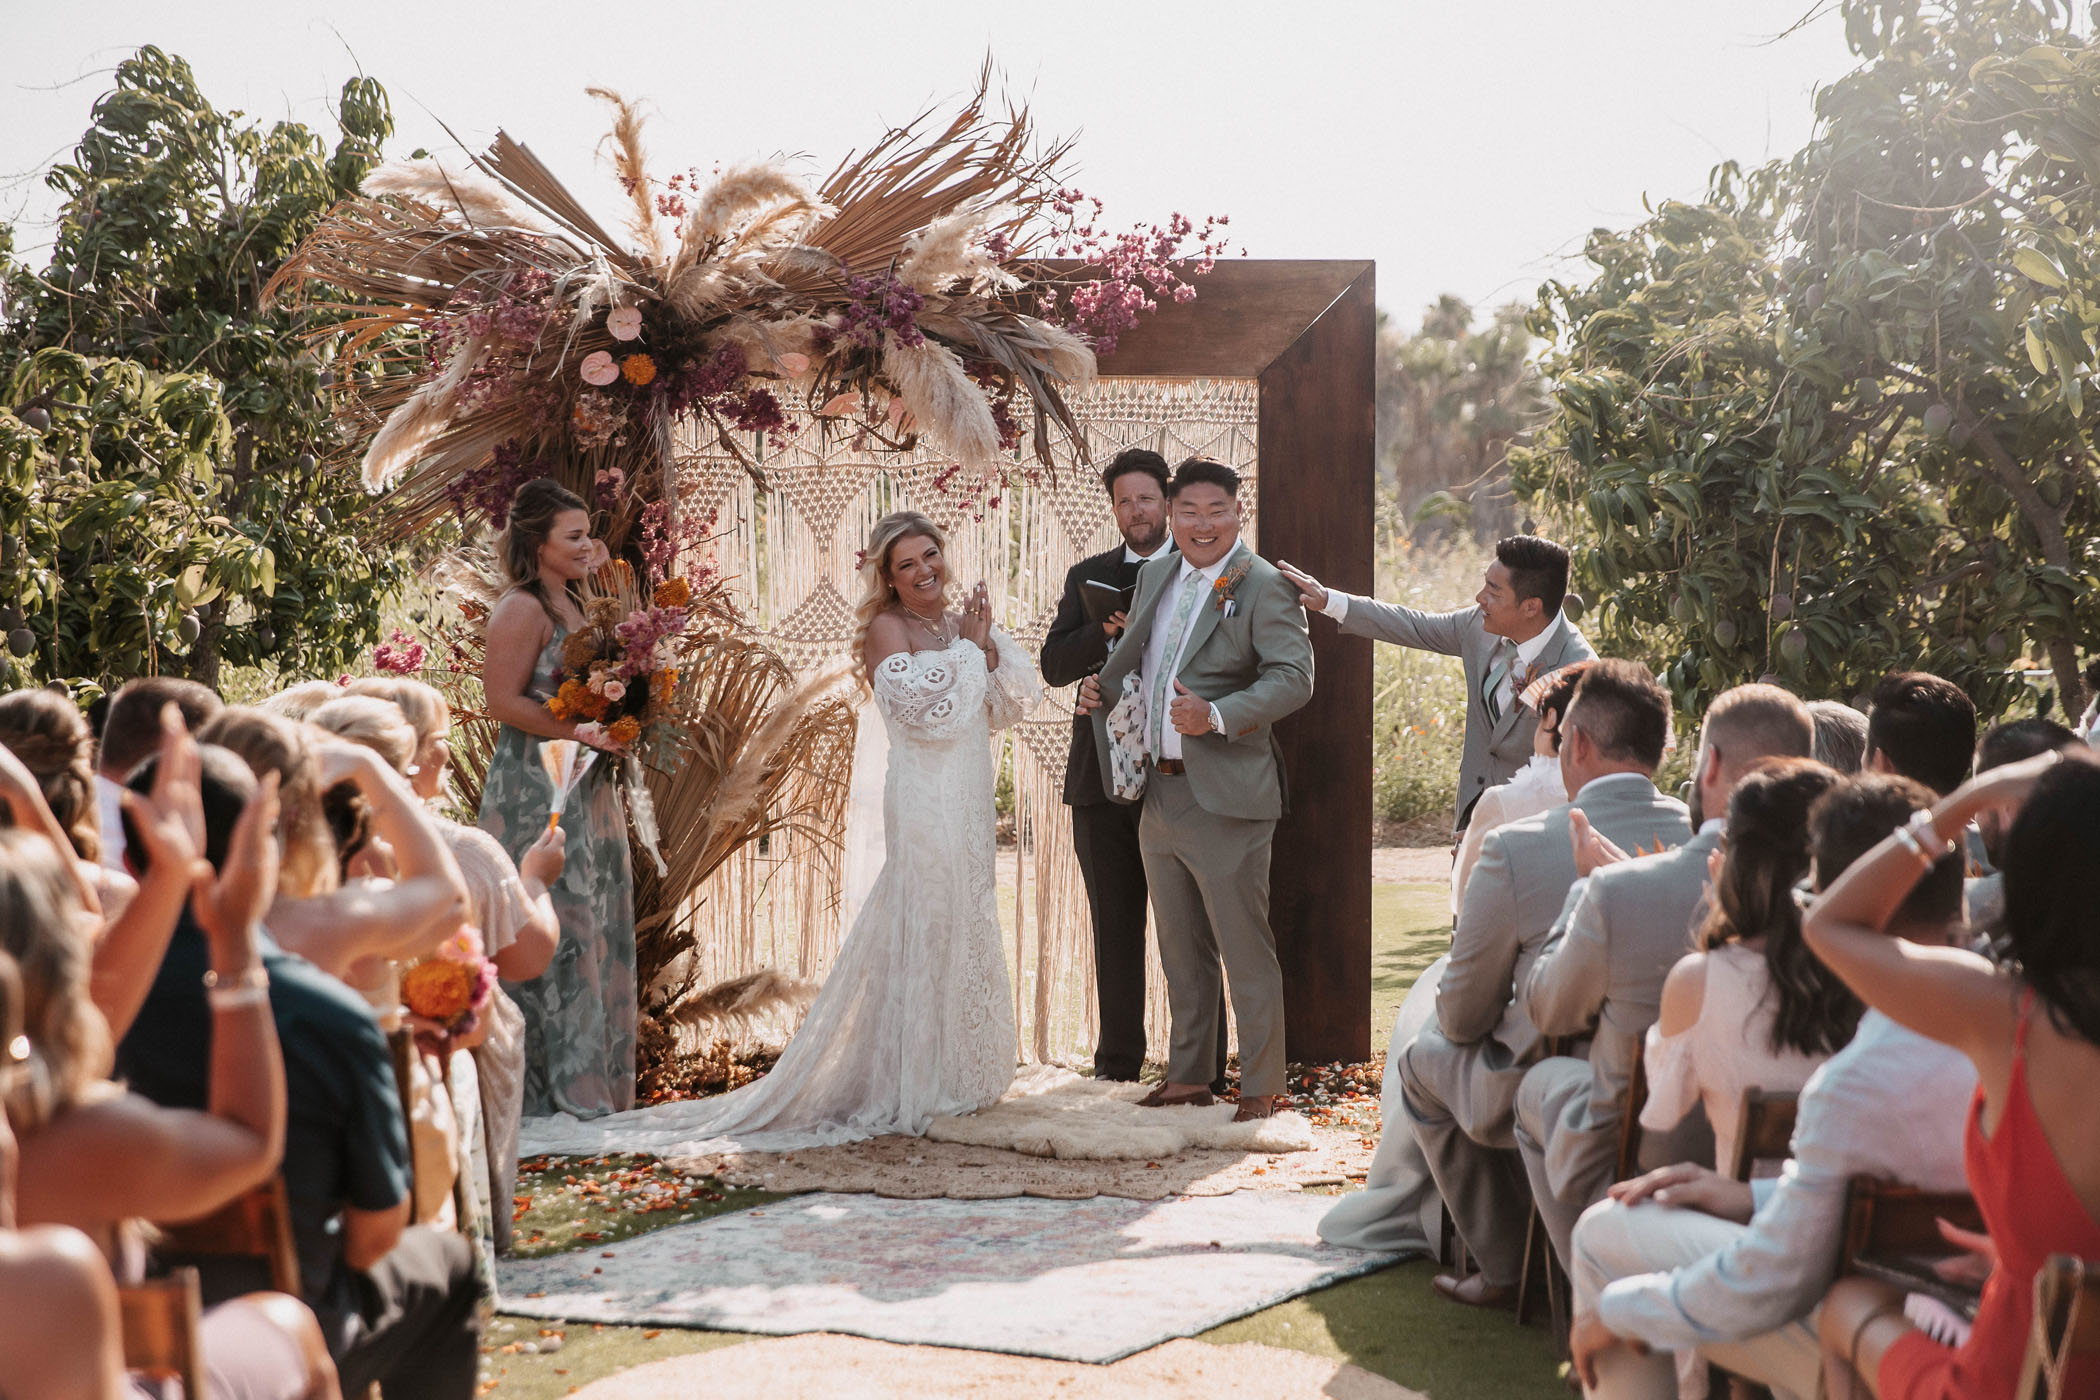 Bride and groom at the altar of their wedding in Mexico